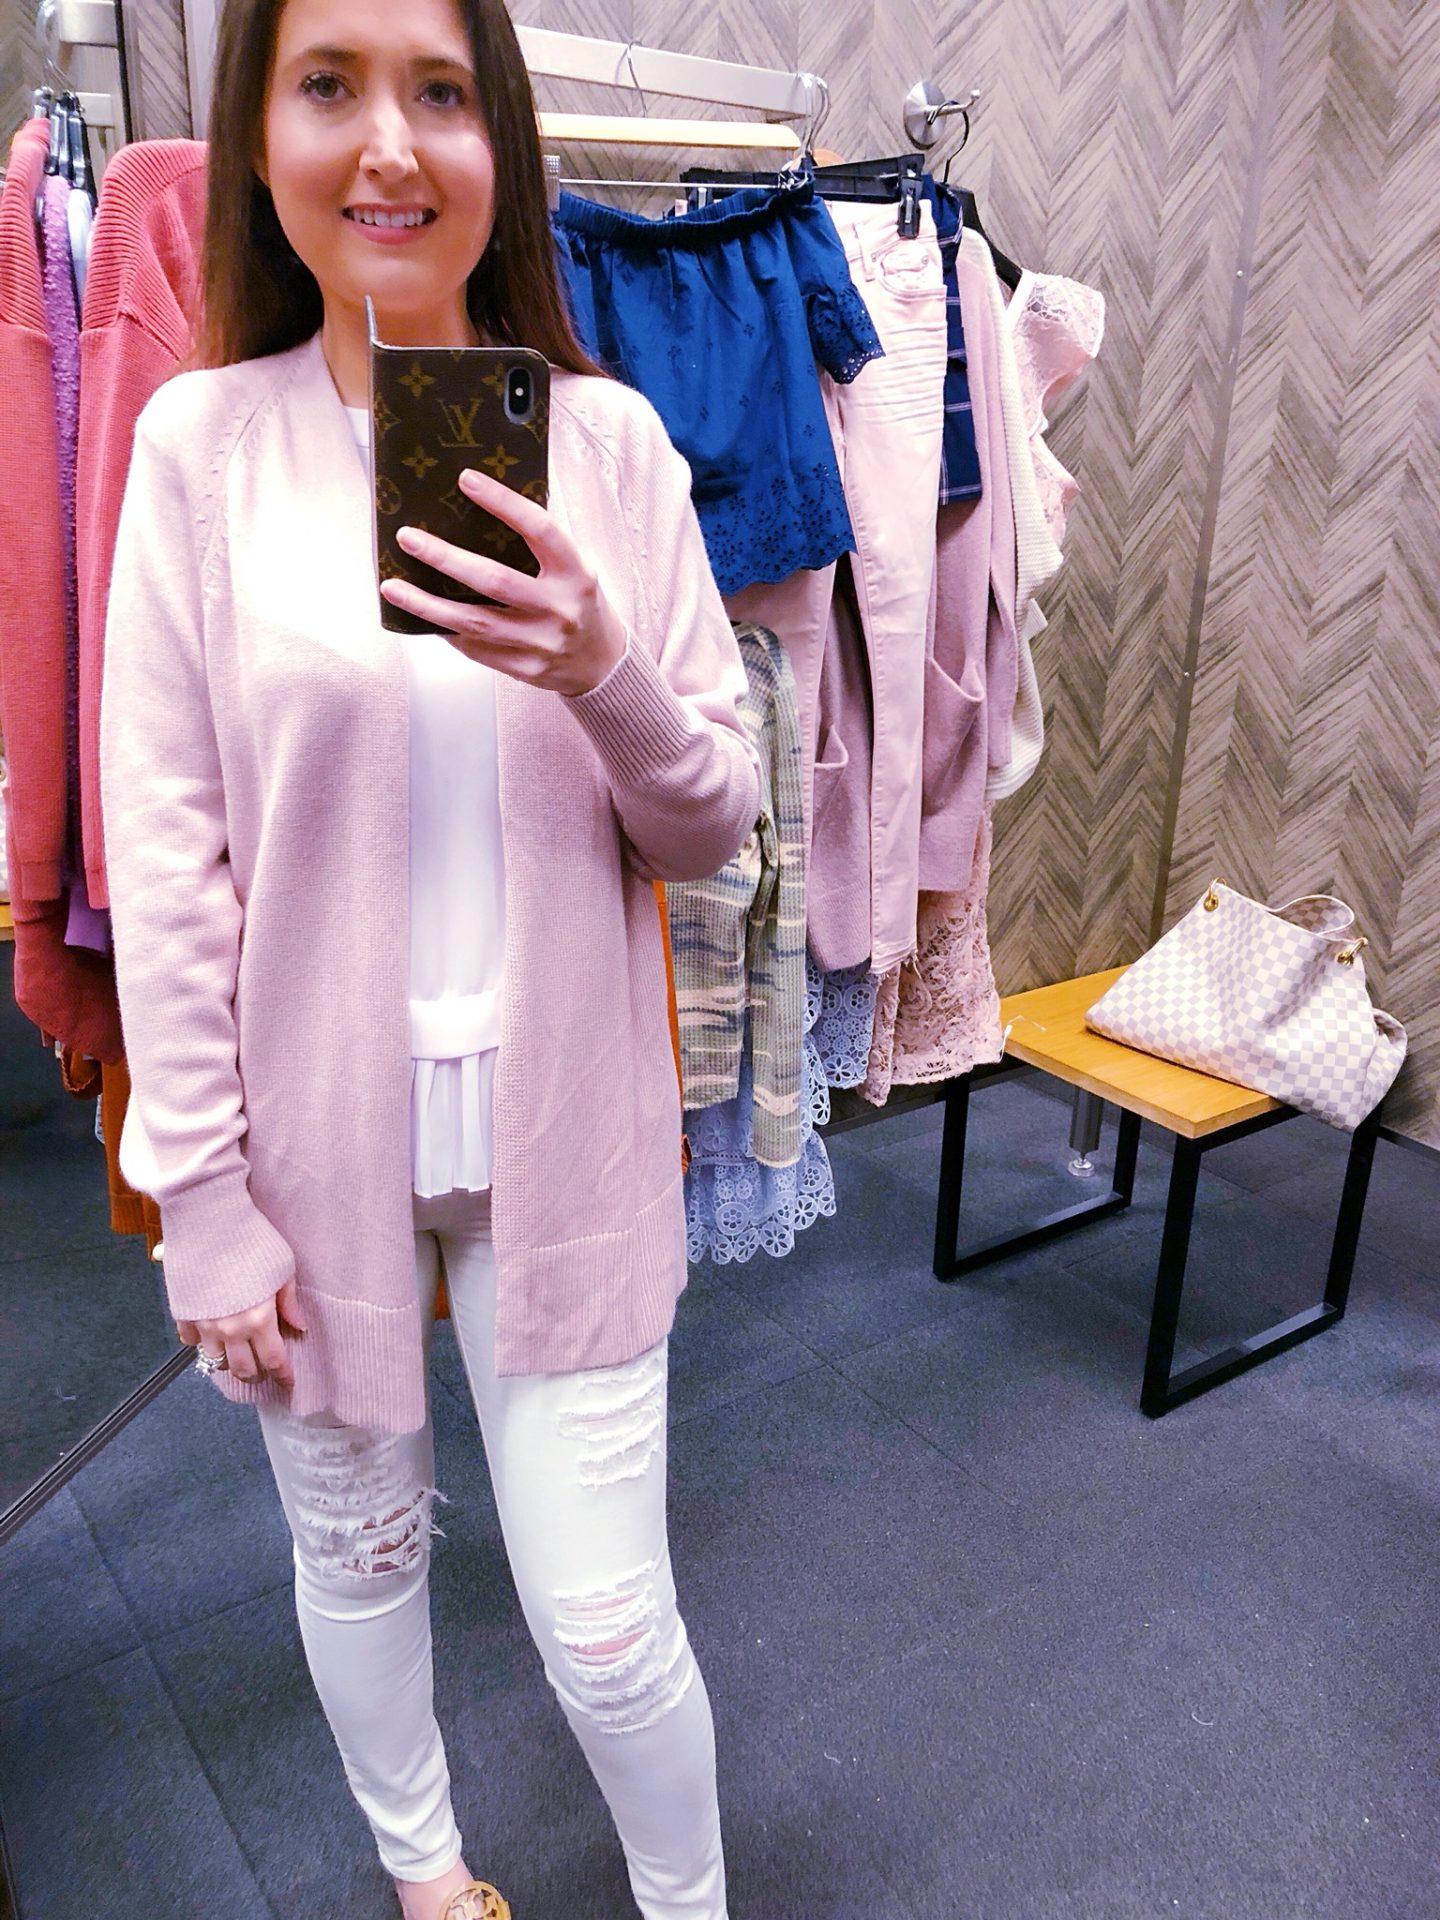 Madewell Ryder cardigan, pink cardigan, Nordstrom anniversary sale, Nordstrom anniversary sale 2018, Nordstrom anniversary sale haul, Nordstrom anniversary sale dressing room try-on